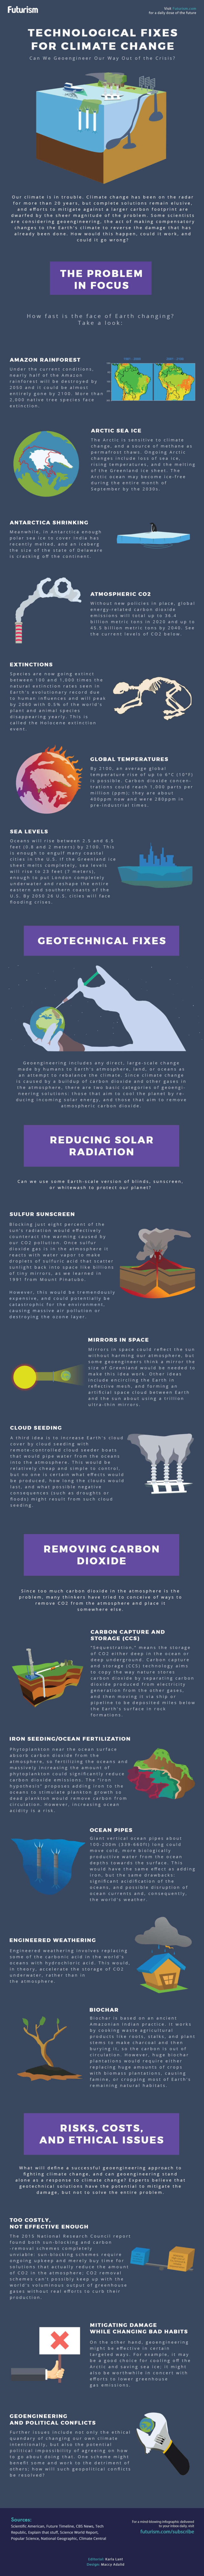 Technological Fixes for Climate Change - infographic